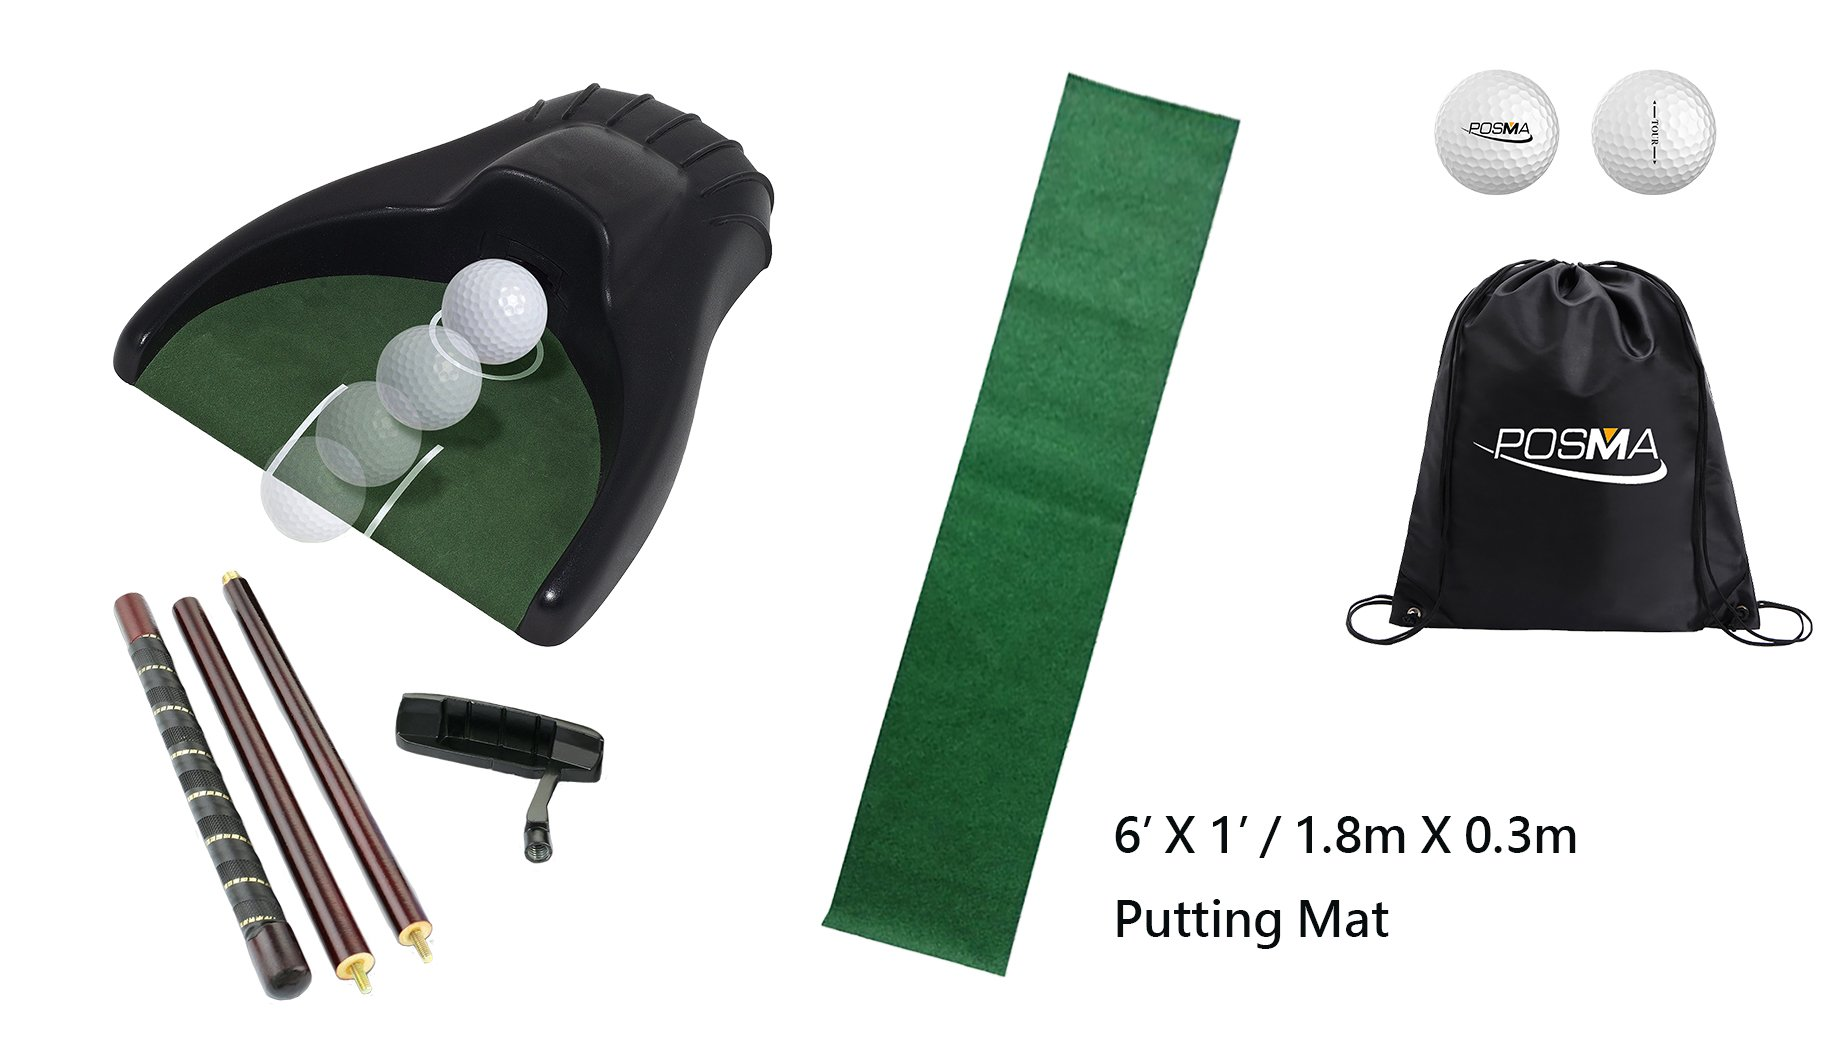 POSMA PG150D Golf Putter Training Putting Trainer Bundle Gift Set with Kickback Putt Cup, 6ft x 1ft Putt Mat, Detachable 4-section putter, 2pcs Tour Ball and Cinch Sack Carry Bag